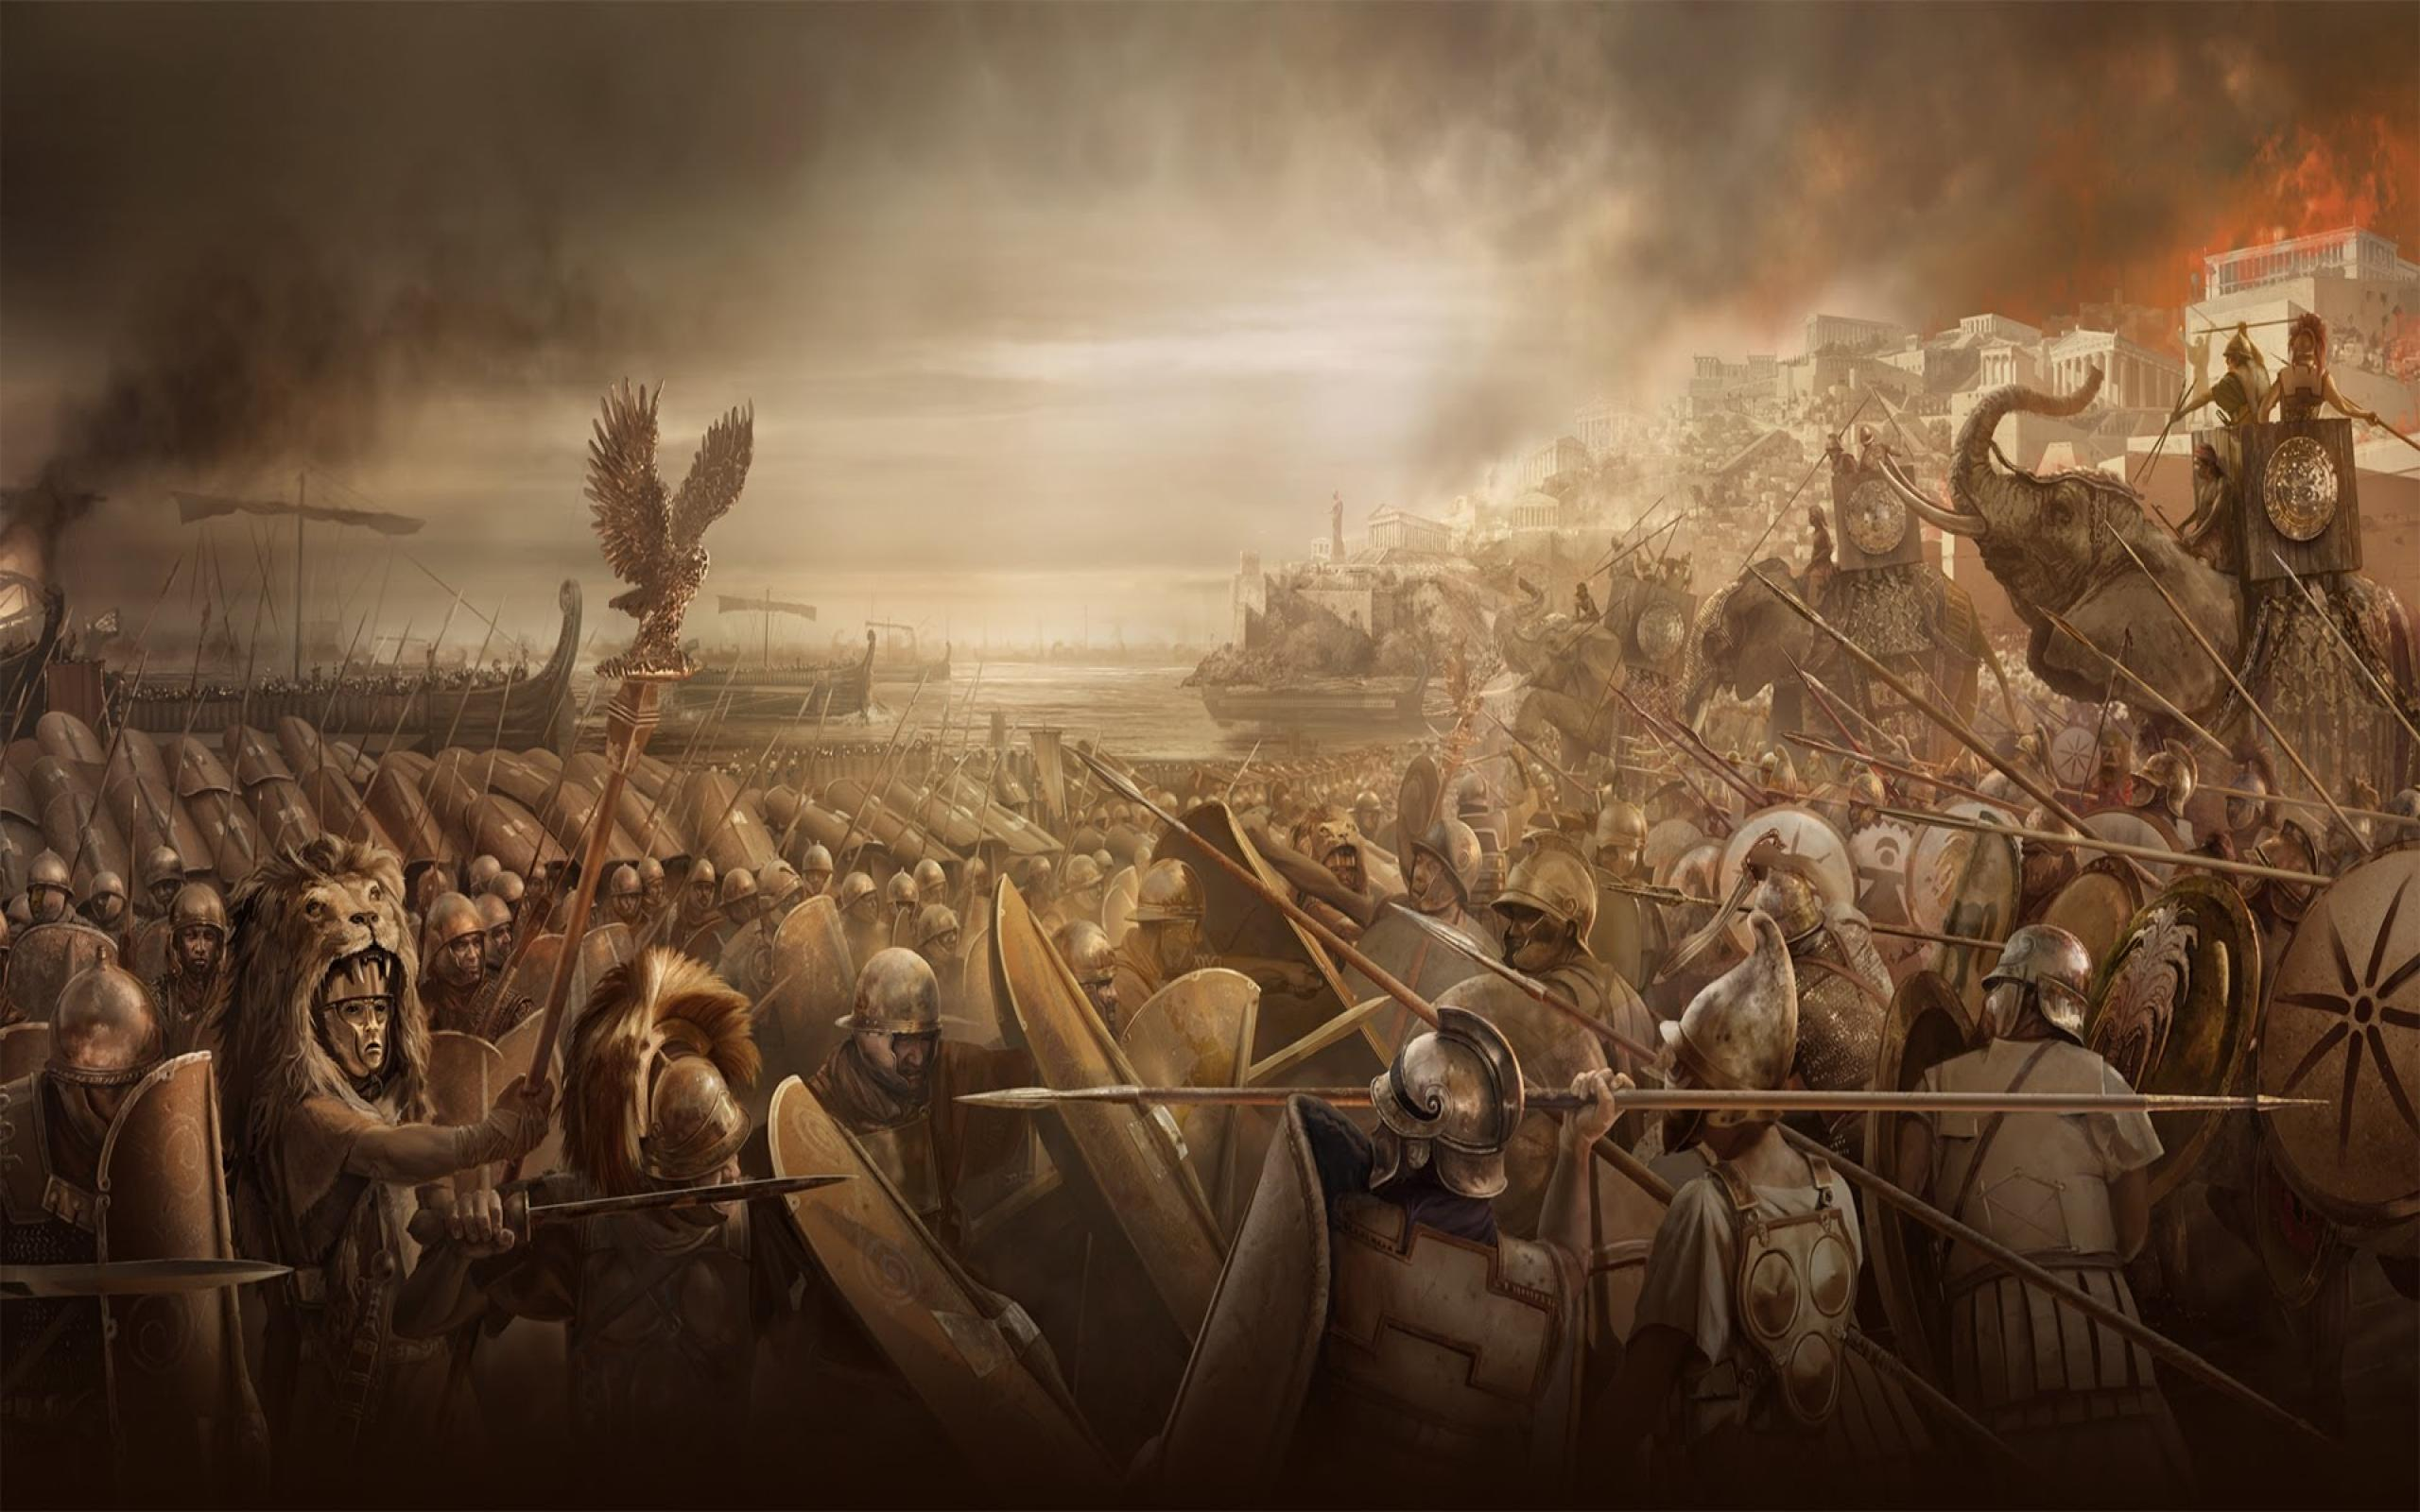 2560x1600 Roman Soldier Wallpaper-39376RN.jpg | Wall2Born.com